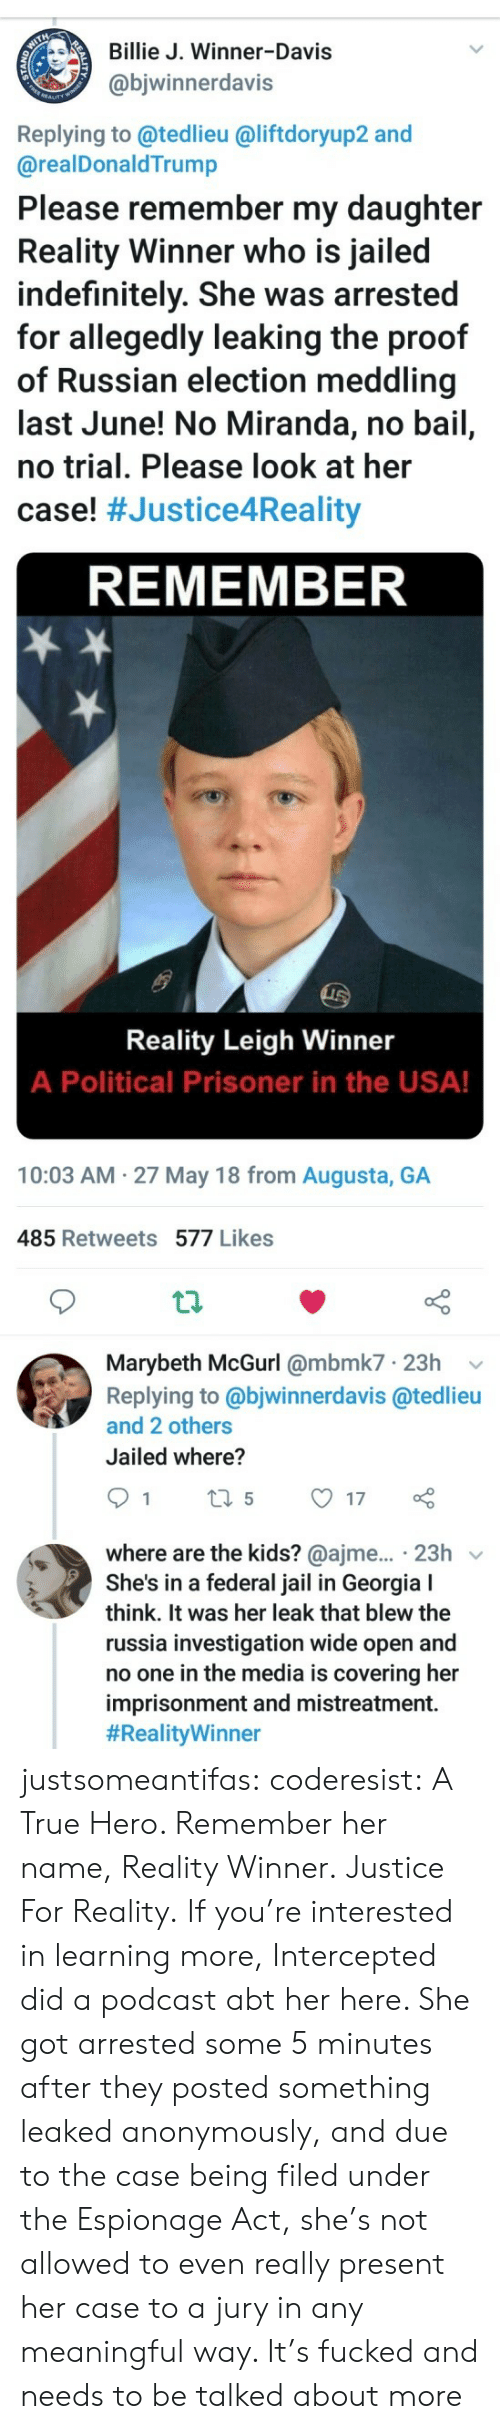 Jail, Target, and True: Billie J. Winner-Davis  @bjwinnerdavis  Replying to @tedlieu @liftdoryup2 and  @realDonaldTrump  Please remember my daughter  Reality Winner who is jailed  indefinitely. She was arrested  for allegedly leaking the proof  of Russian election meddling  last June! No Miranda, no bail,  no trial. Please look at her  case! #Justice4Reality  REMEMBER  Reality Leigh Winner  A Political Prisoner in the USA!  10:03 AM 27 May 18 from Augusta, GA  485 Retweets 577 Likes  th  Marybeth McGurl @mbmk7 23h v  Replying to @bjwinnerdavis @tedlieu  and 2 others  Jailed where?  where are the kids? @ajme... 23h v  She's in a federal jail in Georgia I  think. It was her leak that blew the  russia investigation wide open and  no one in the media is covering her  imprisonment and mistreatment.  justsomeantifas:  coderesist: A True Hero. Remember her name, Reality Winner. Justice For Reality.   If you're interested in learning more, Intercepted did a podcast abt her here. She got arrested some 5 minutes after they posted something leaked anonymously, and due to the case being filed under the Espionage Act, she's not allowed to even really present her case to a jury in any meaningful way. It's fucked and needs to be talked about more